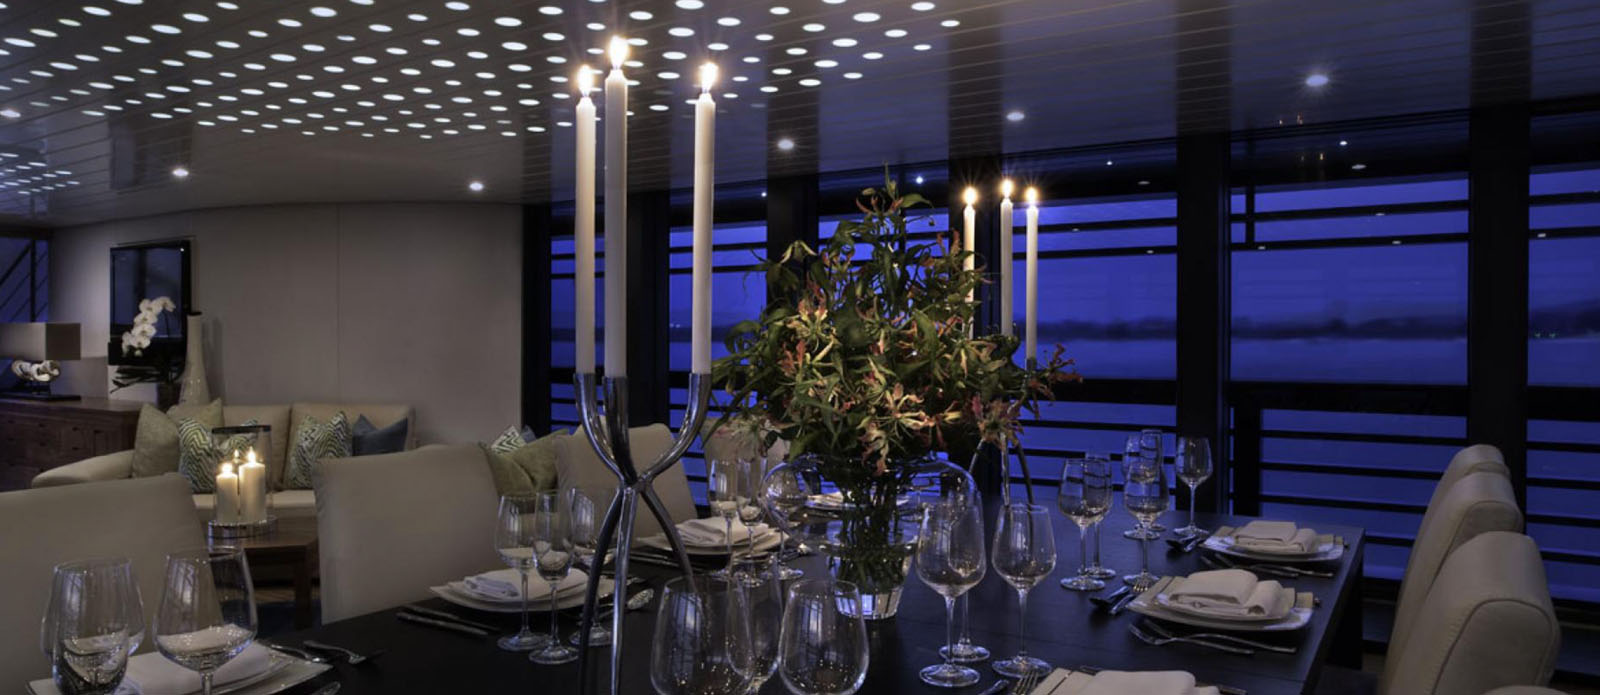 Ocean Emerald - Interior Dining